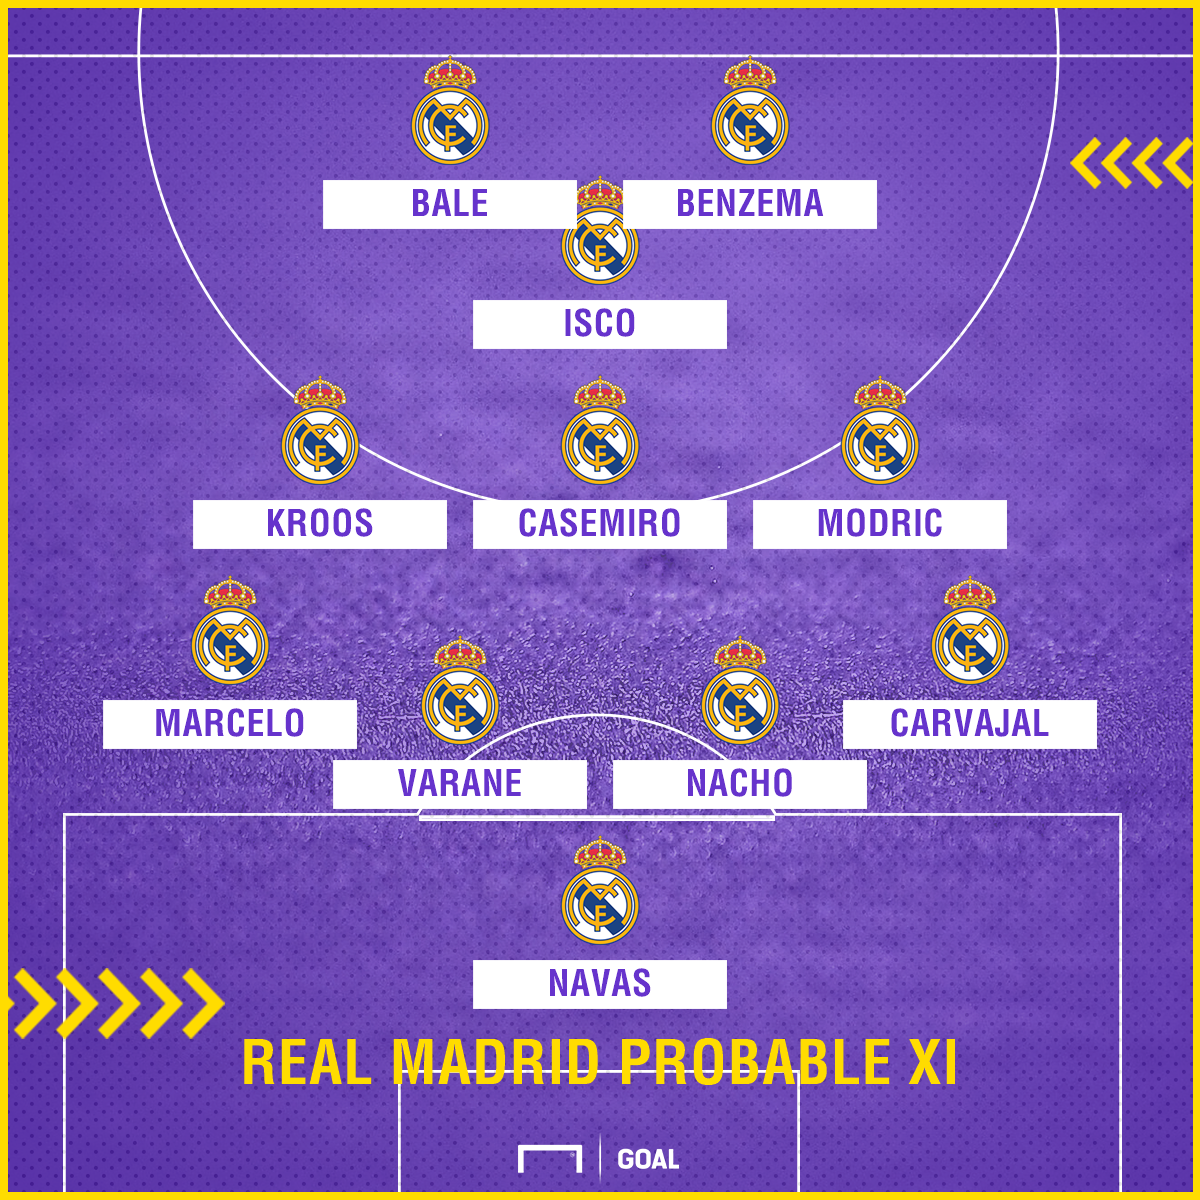 Real Madrid probable XI Valencia